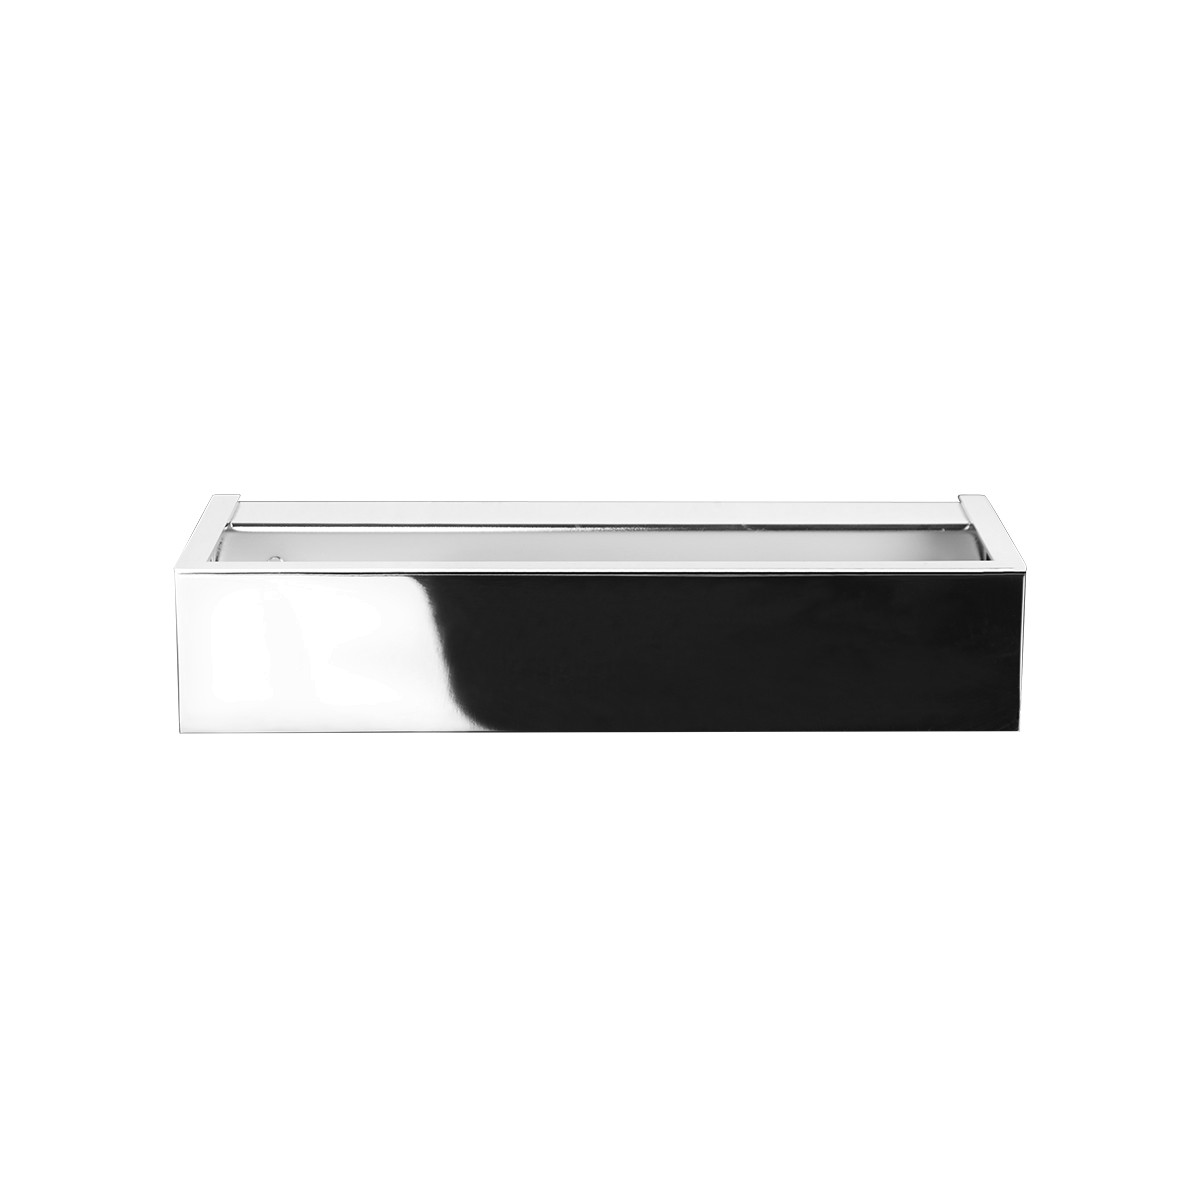 Decor Walter Box 25 LED Wandleuchte, Chrom